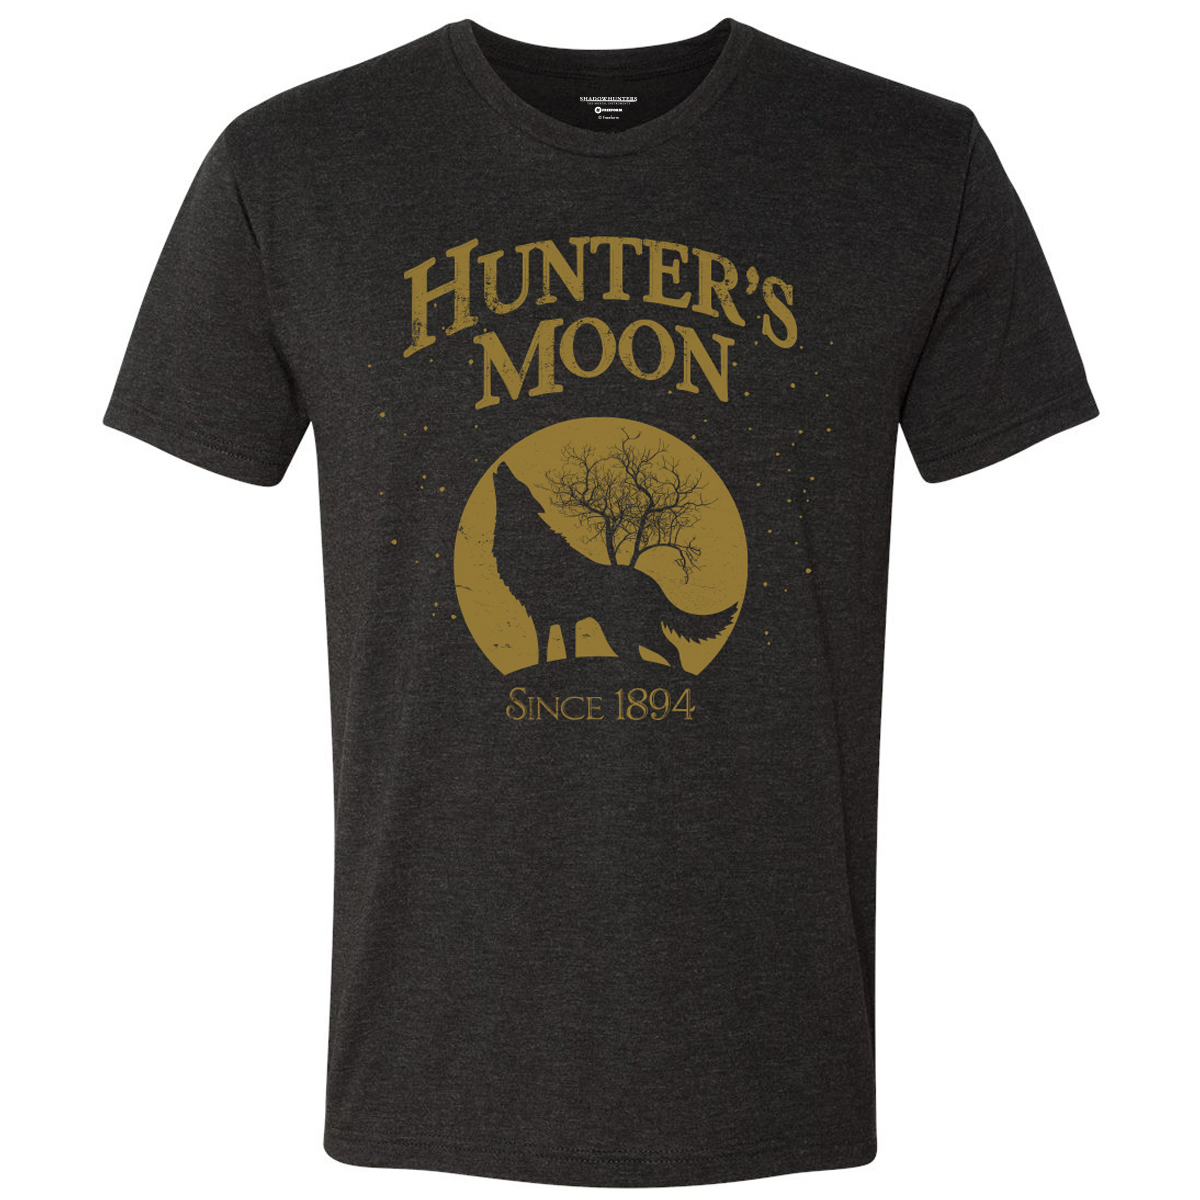 Shadowhunters Hunters Moon T-Shirt